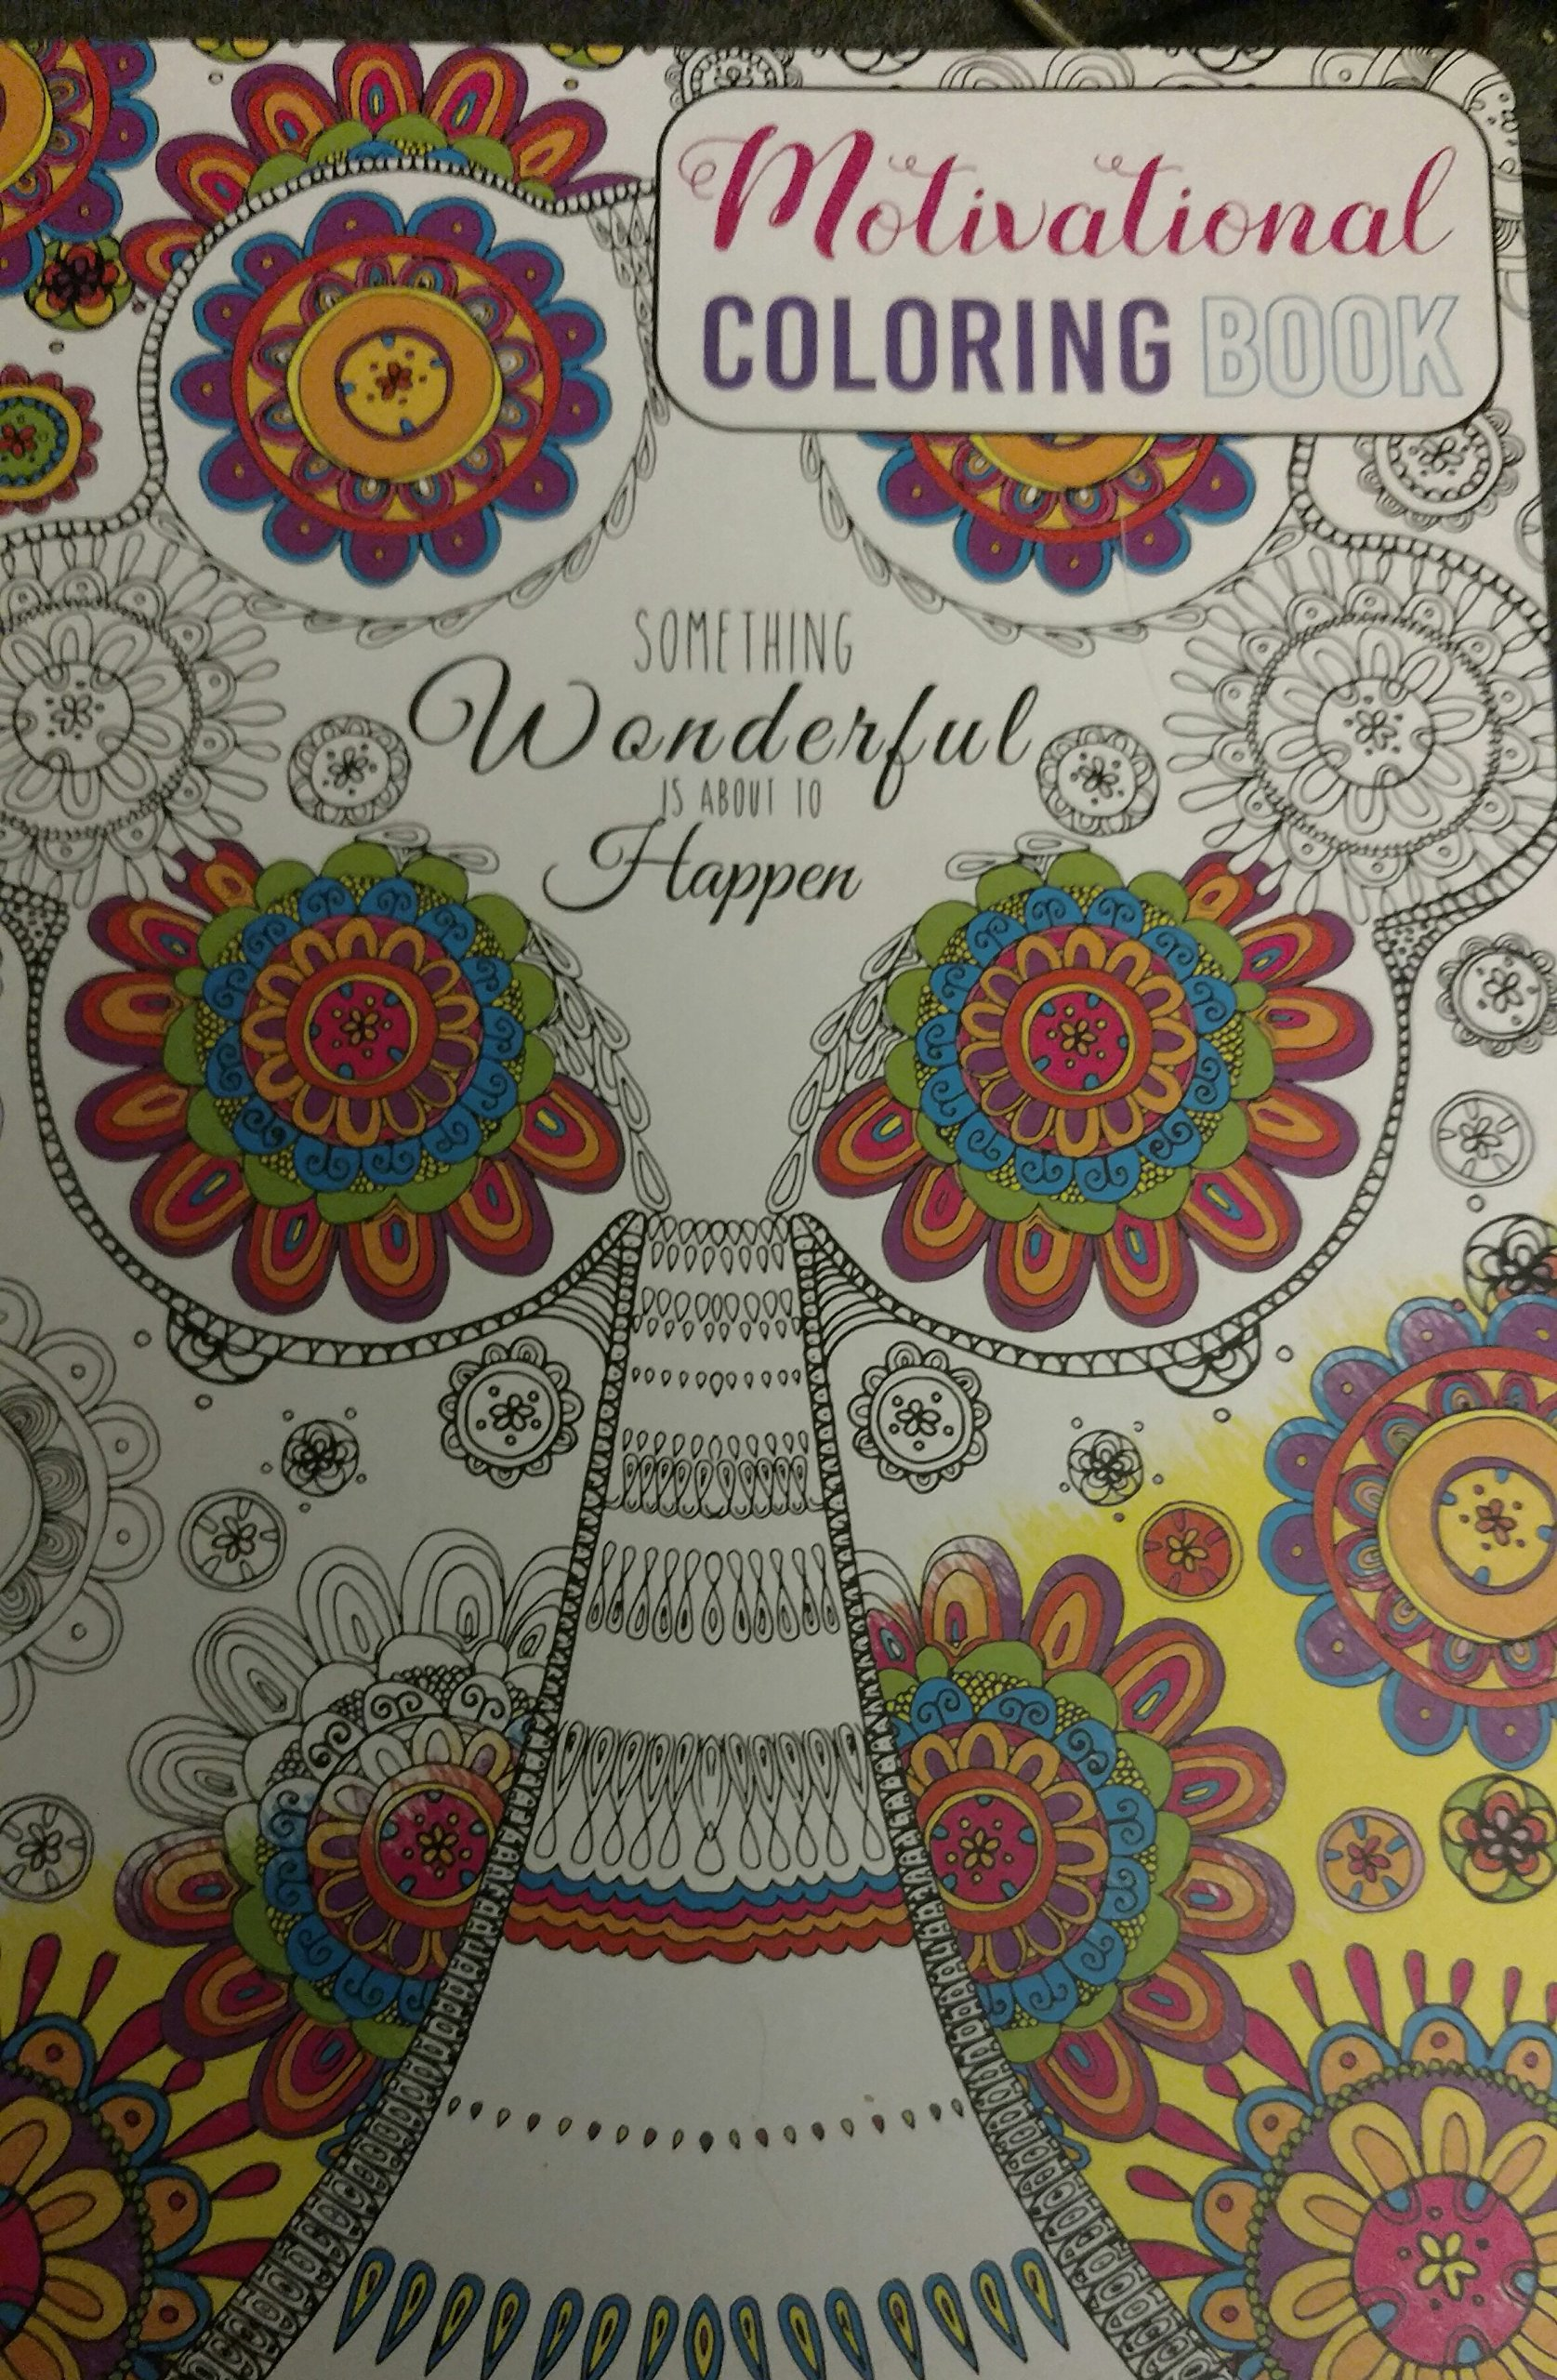 - Motivational Coloring Book, Something Wonderful Is About To Happen